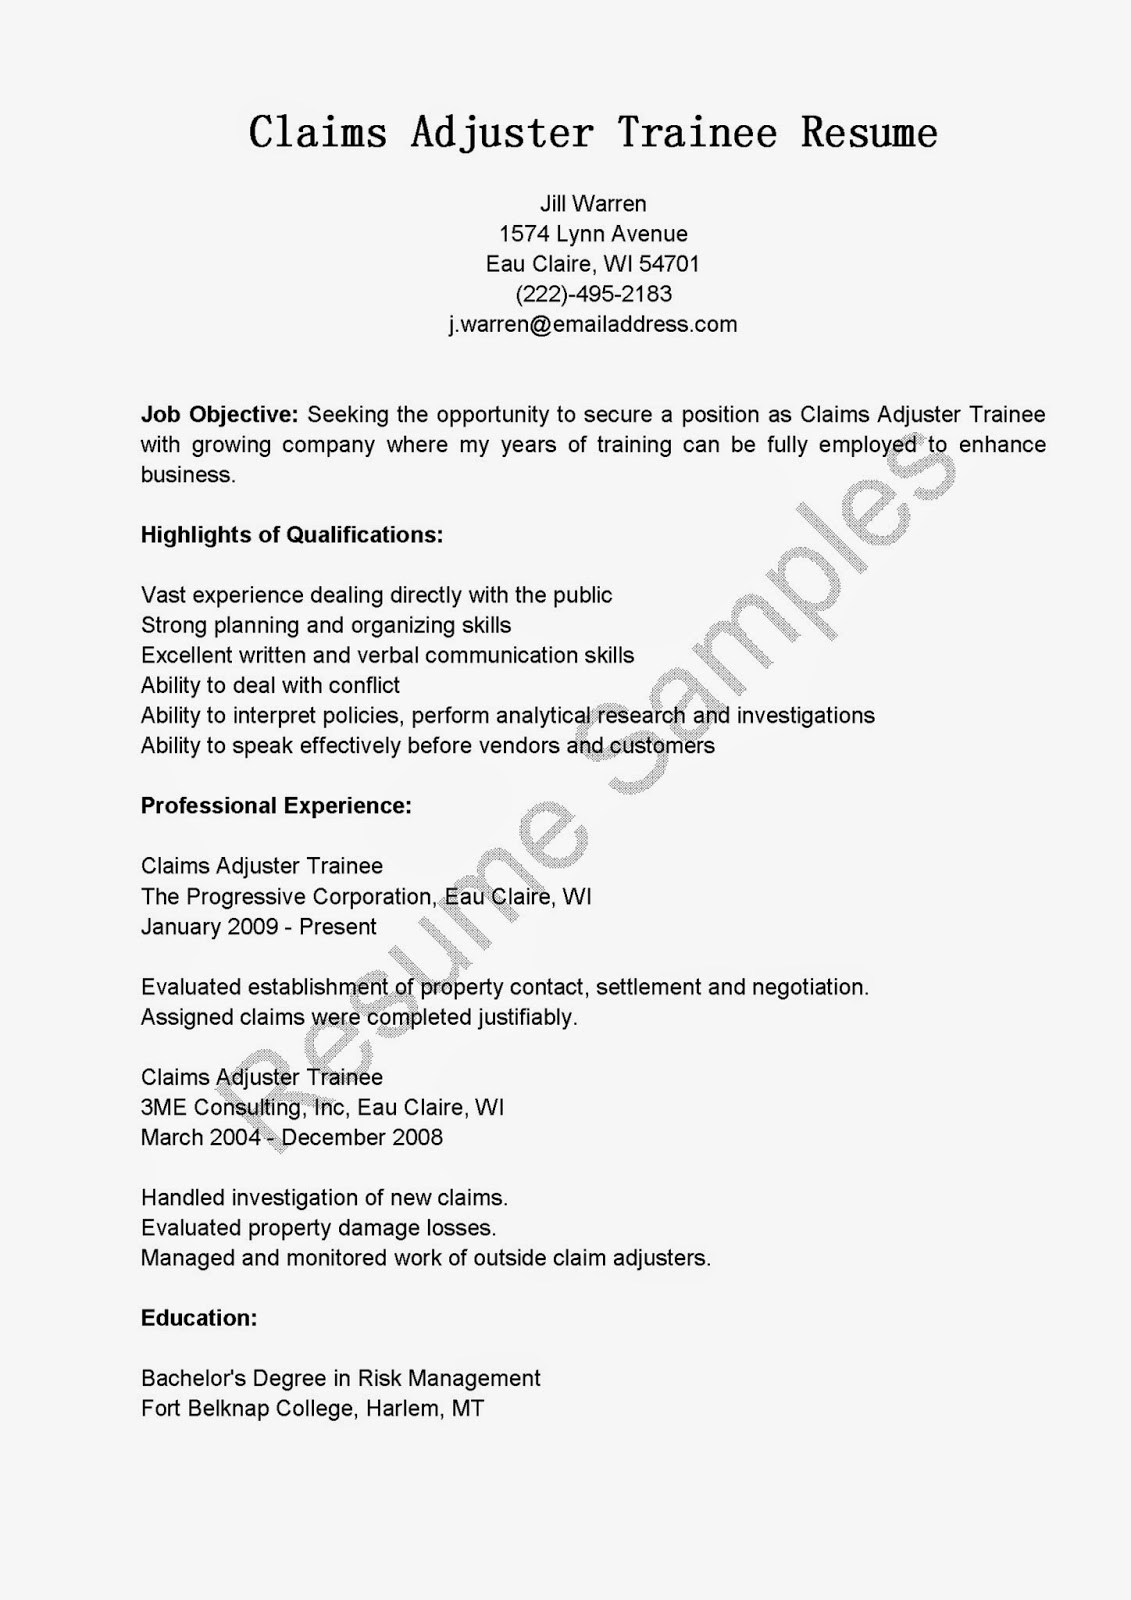 resume sles claims adjuster trainee resume sle